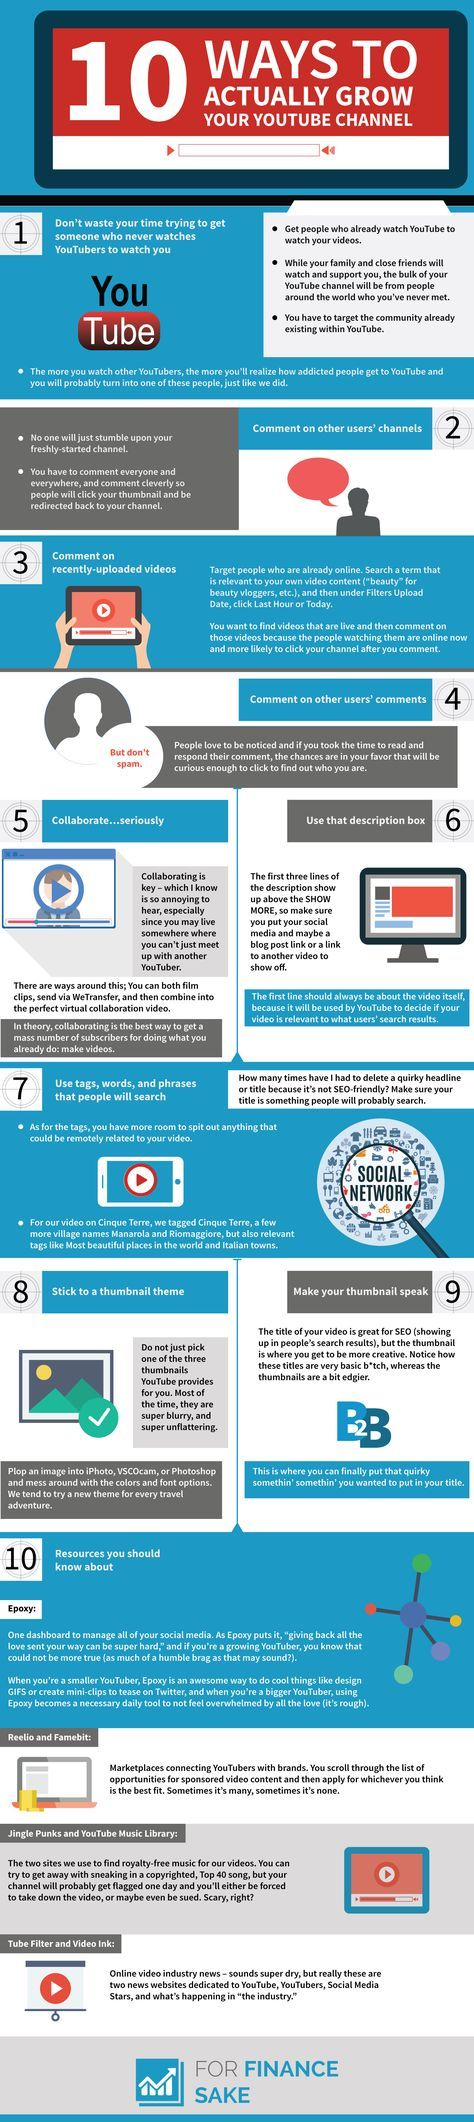 Info Graphic 10 Ways To Actually Grow Your Youtube Channel For Finance Sake Video Marketing Youtube Channel Ideas Youtube Marketing